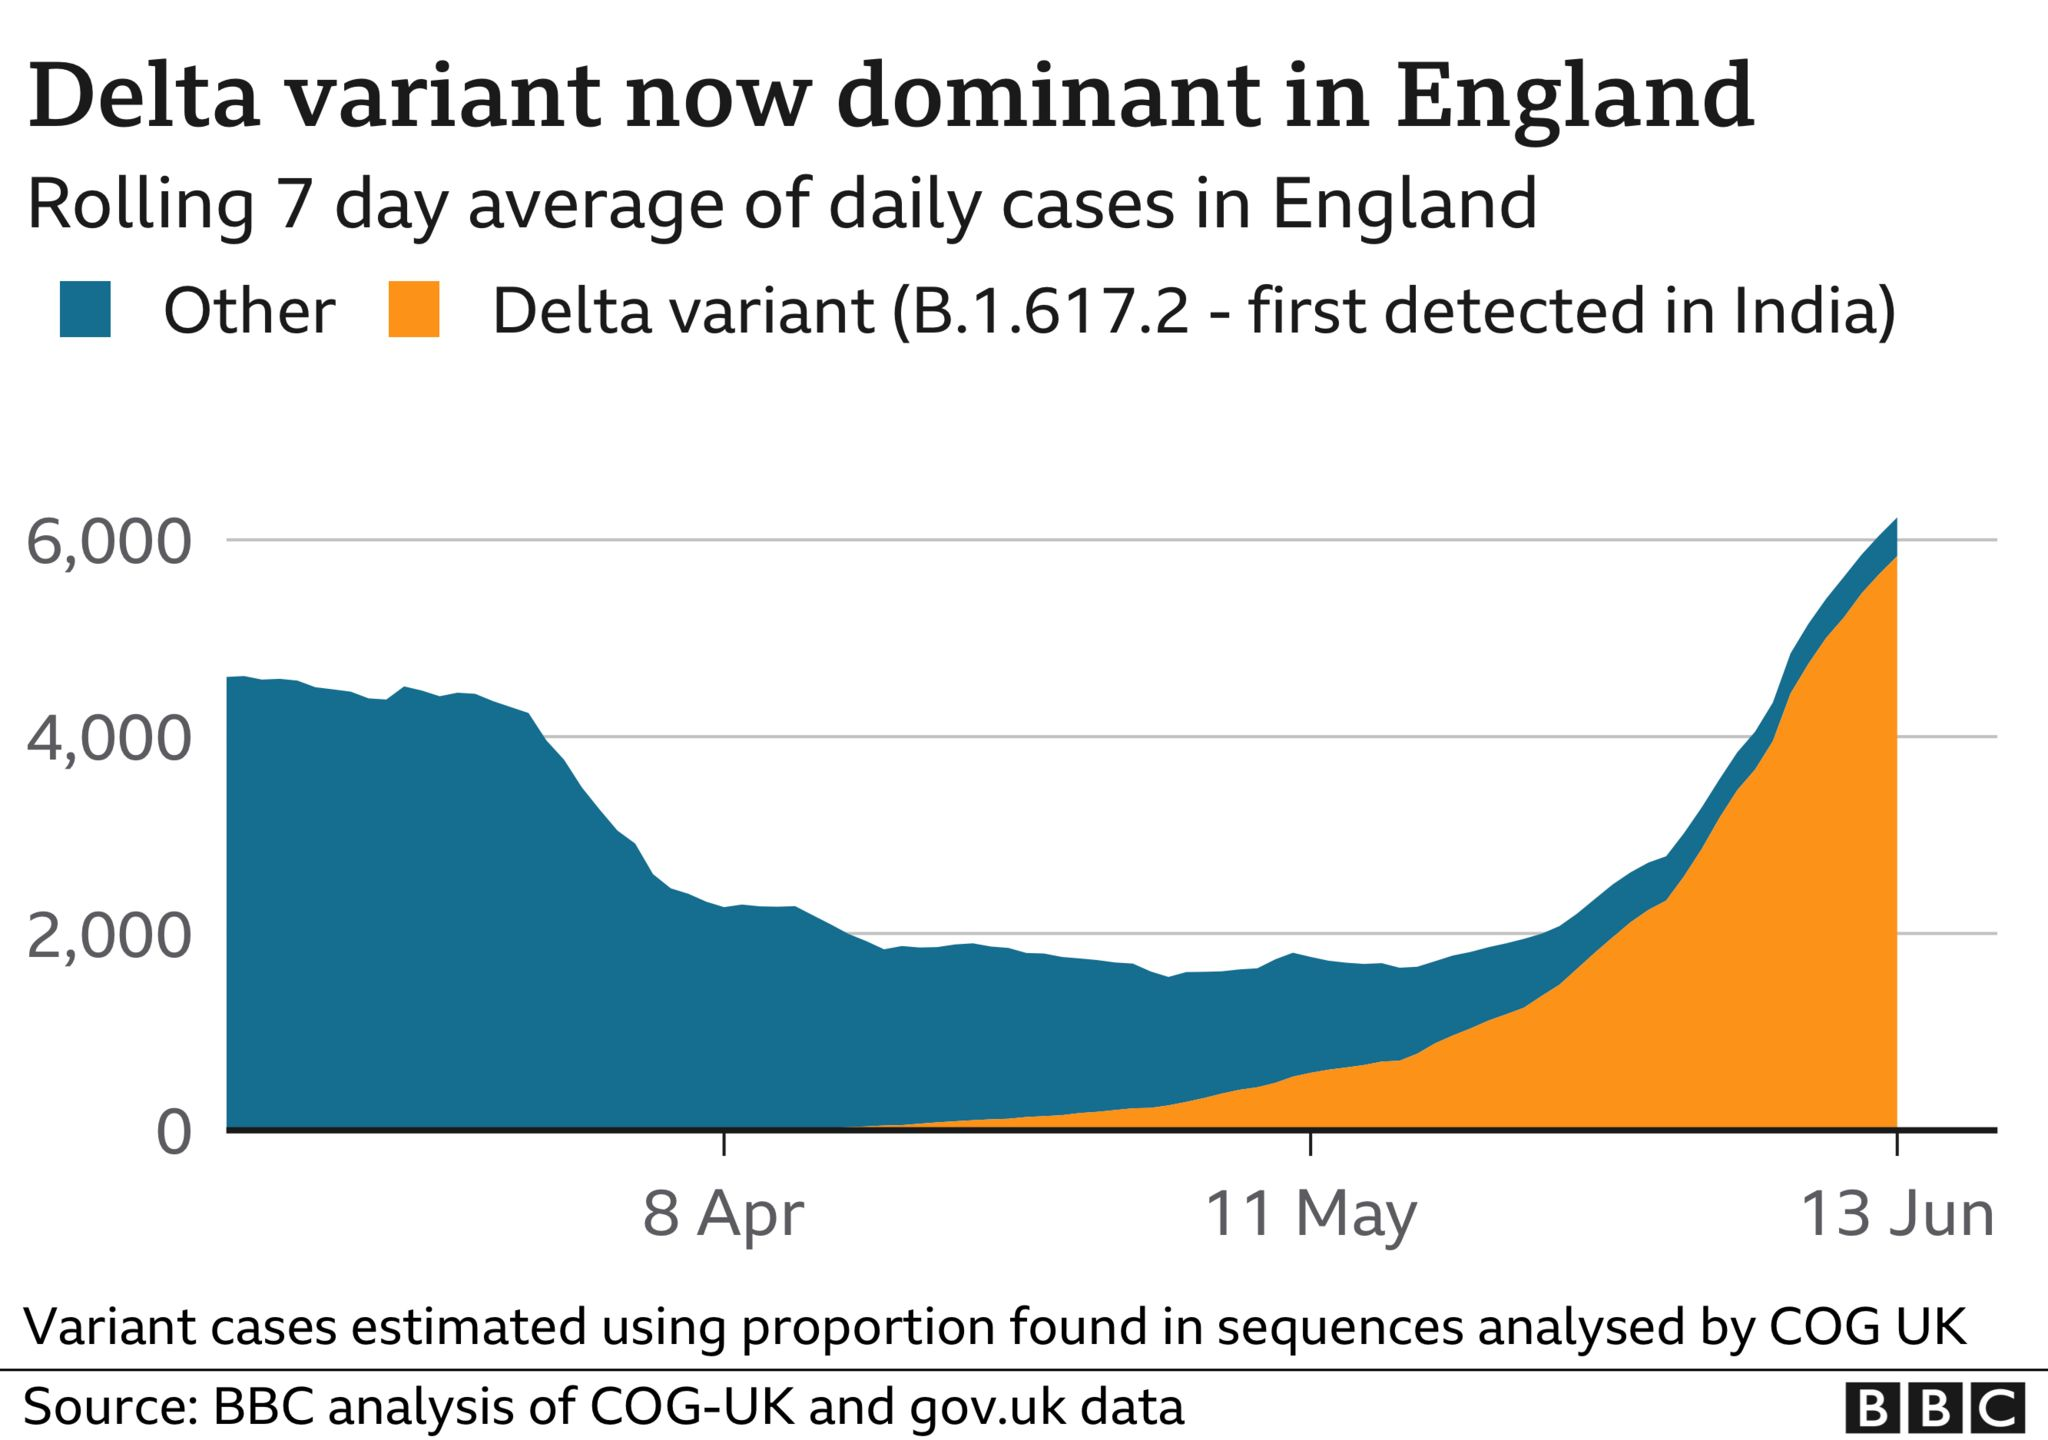 Chart showing Delta variant now dominant in England